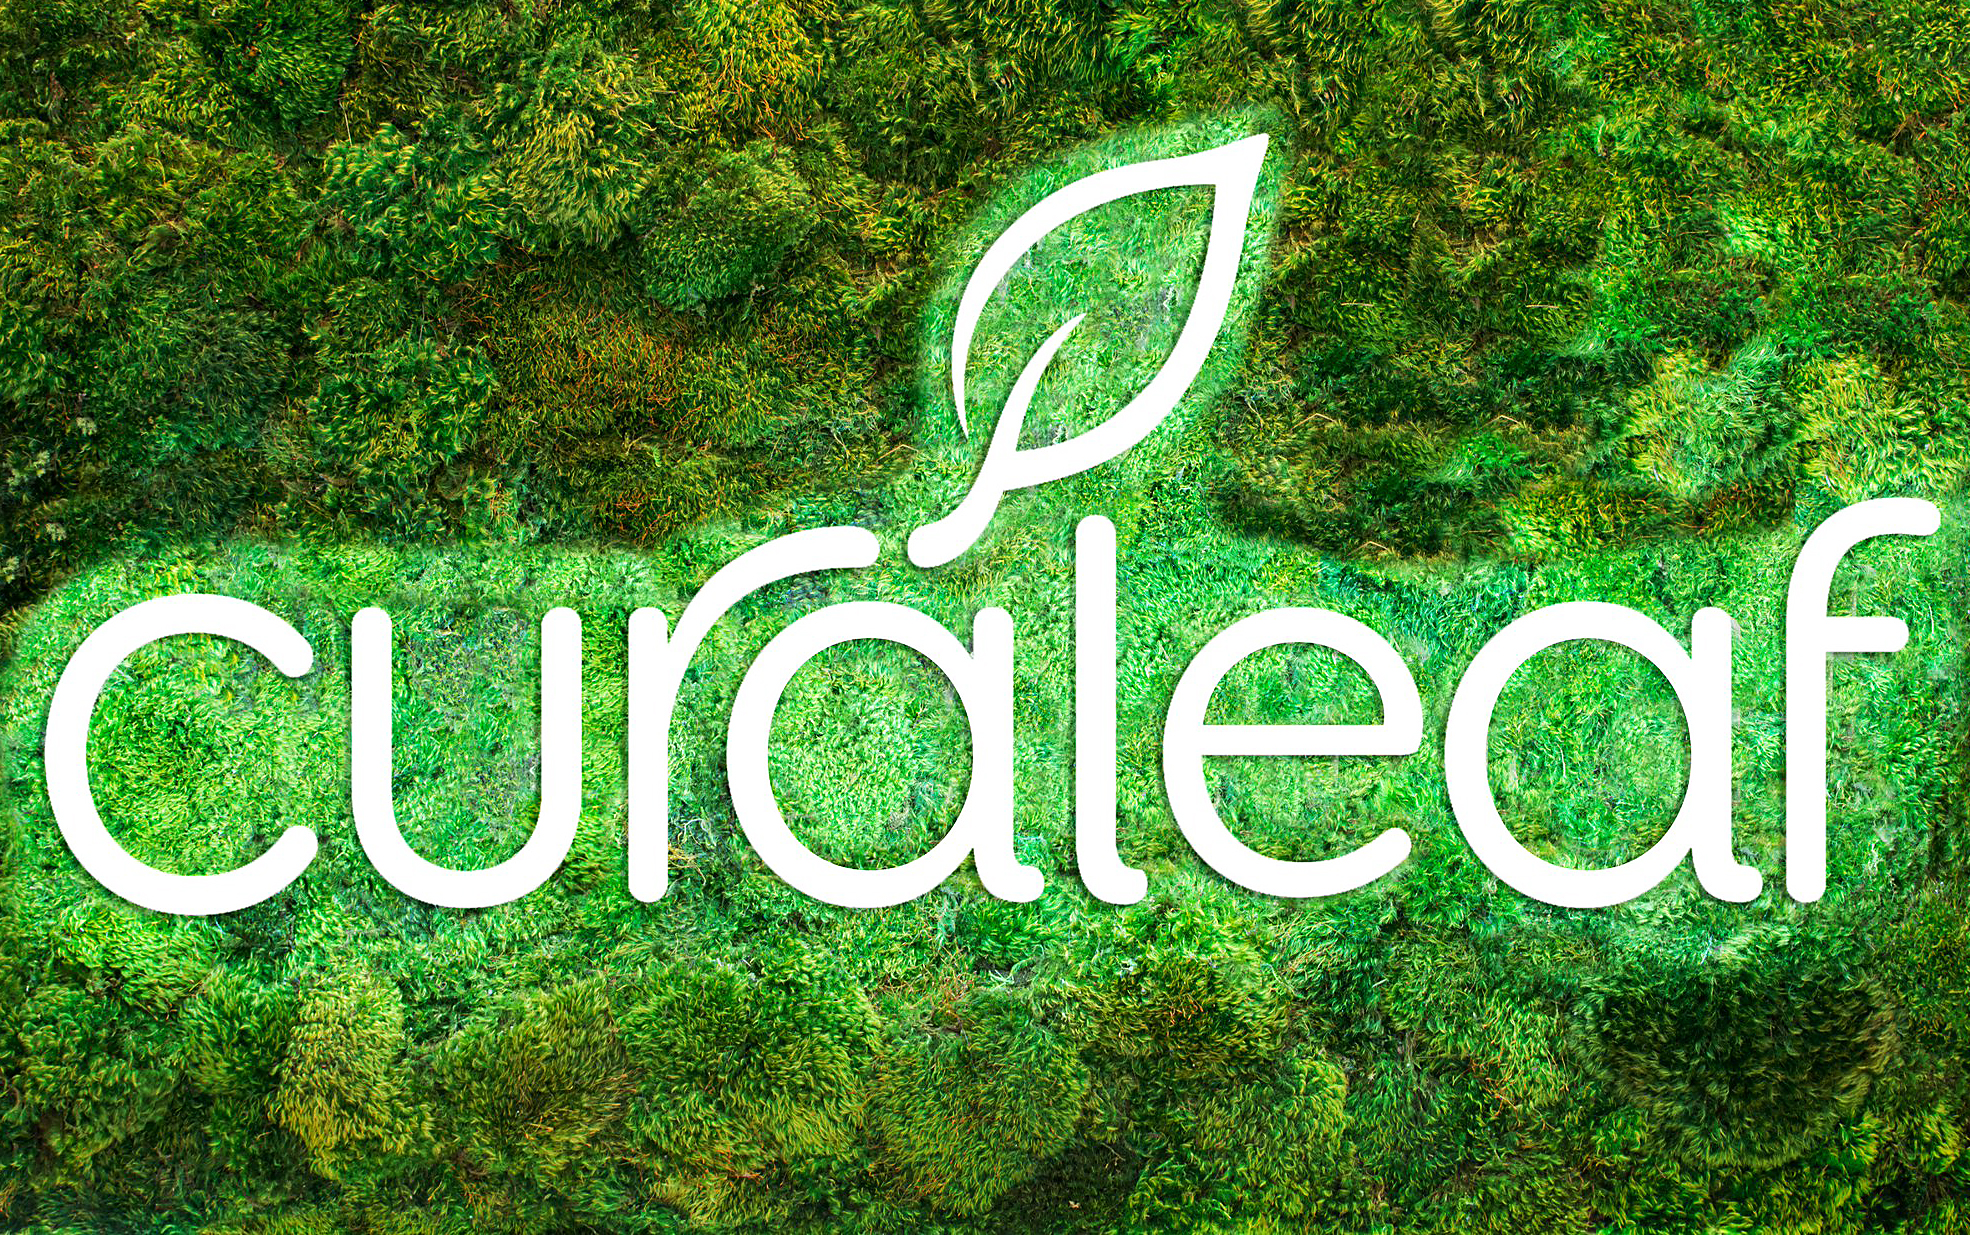 Curaleaf says its on track to be world's biggest weed company in Q1 report